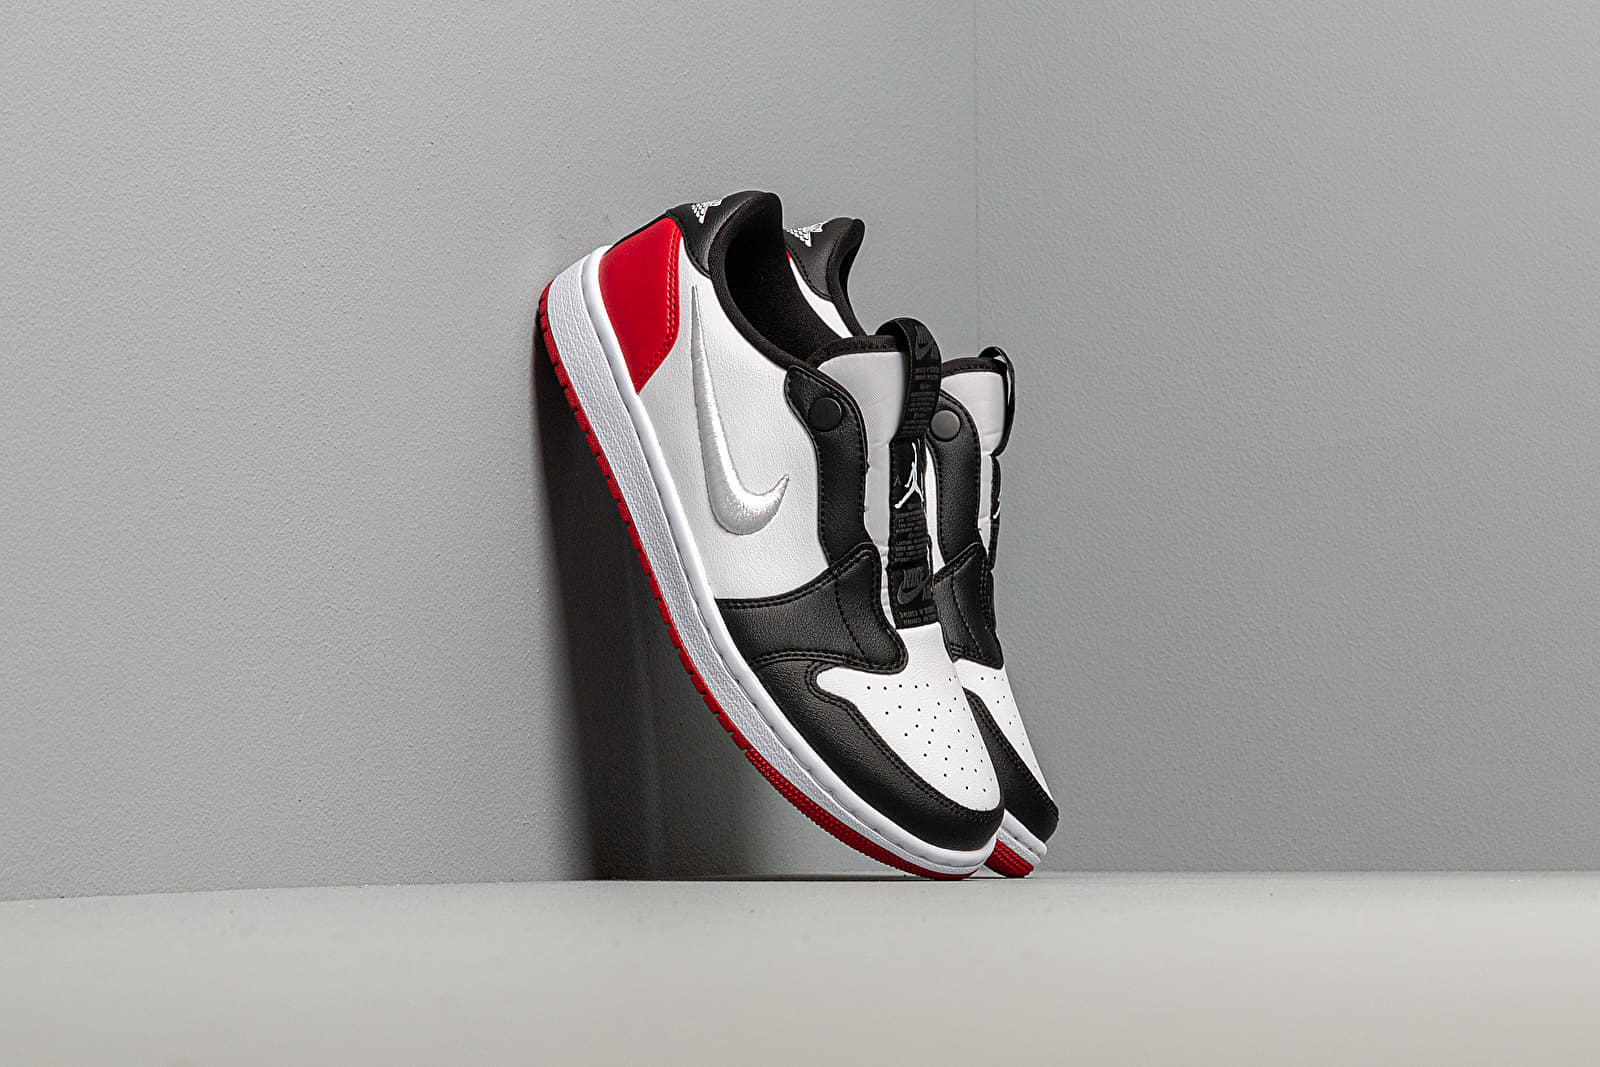 Air Jordan Wmns 1 Retro Low Slip